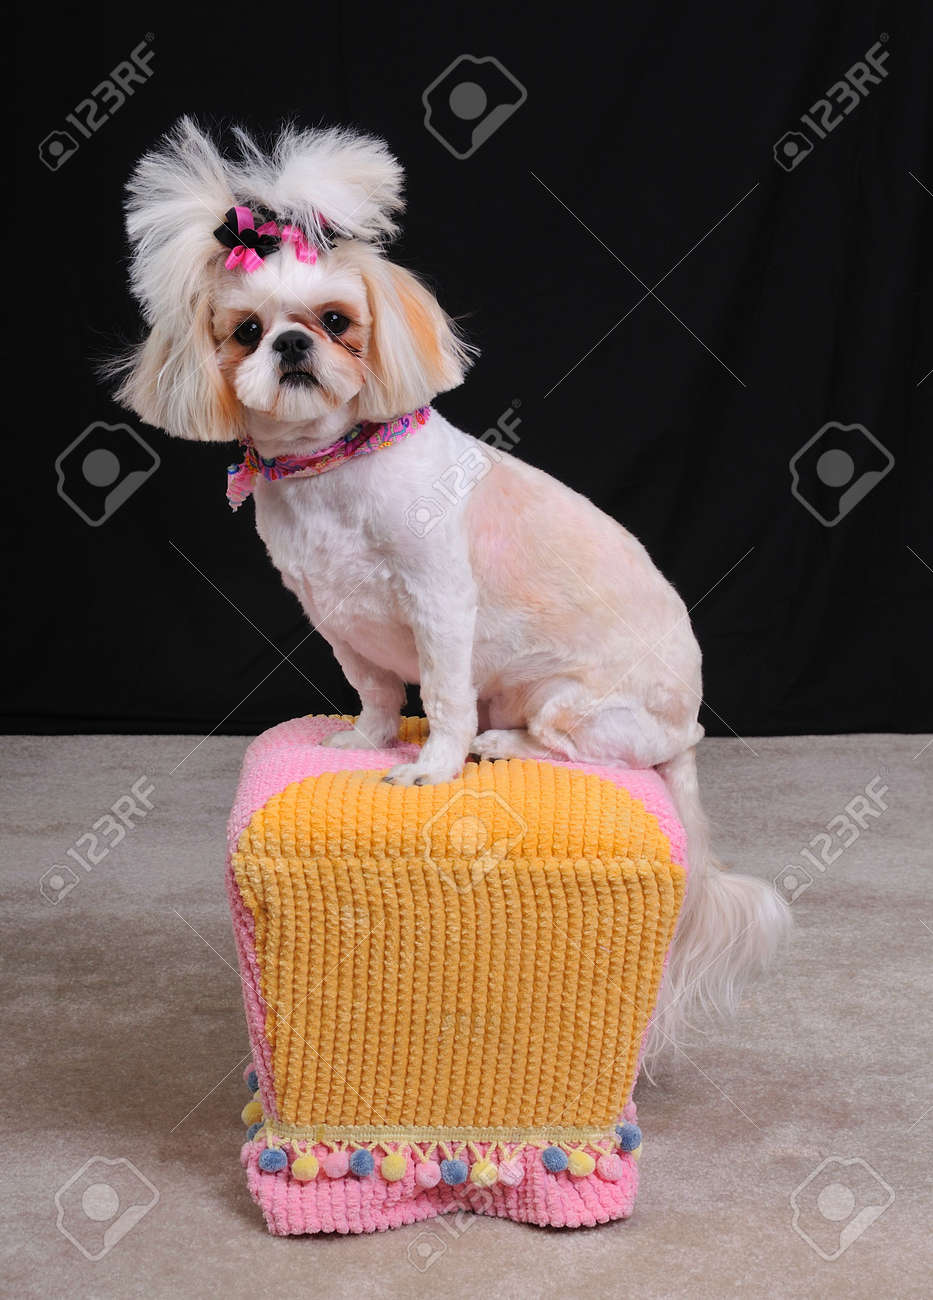 Shih Tzu Dog With A Short Summer Haircut And Bows In Her Pigtails Stock Photo Picture And Royalty Free Image Image 4541216